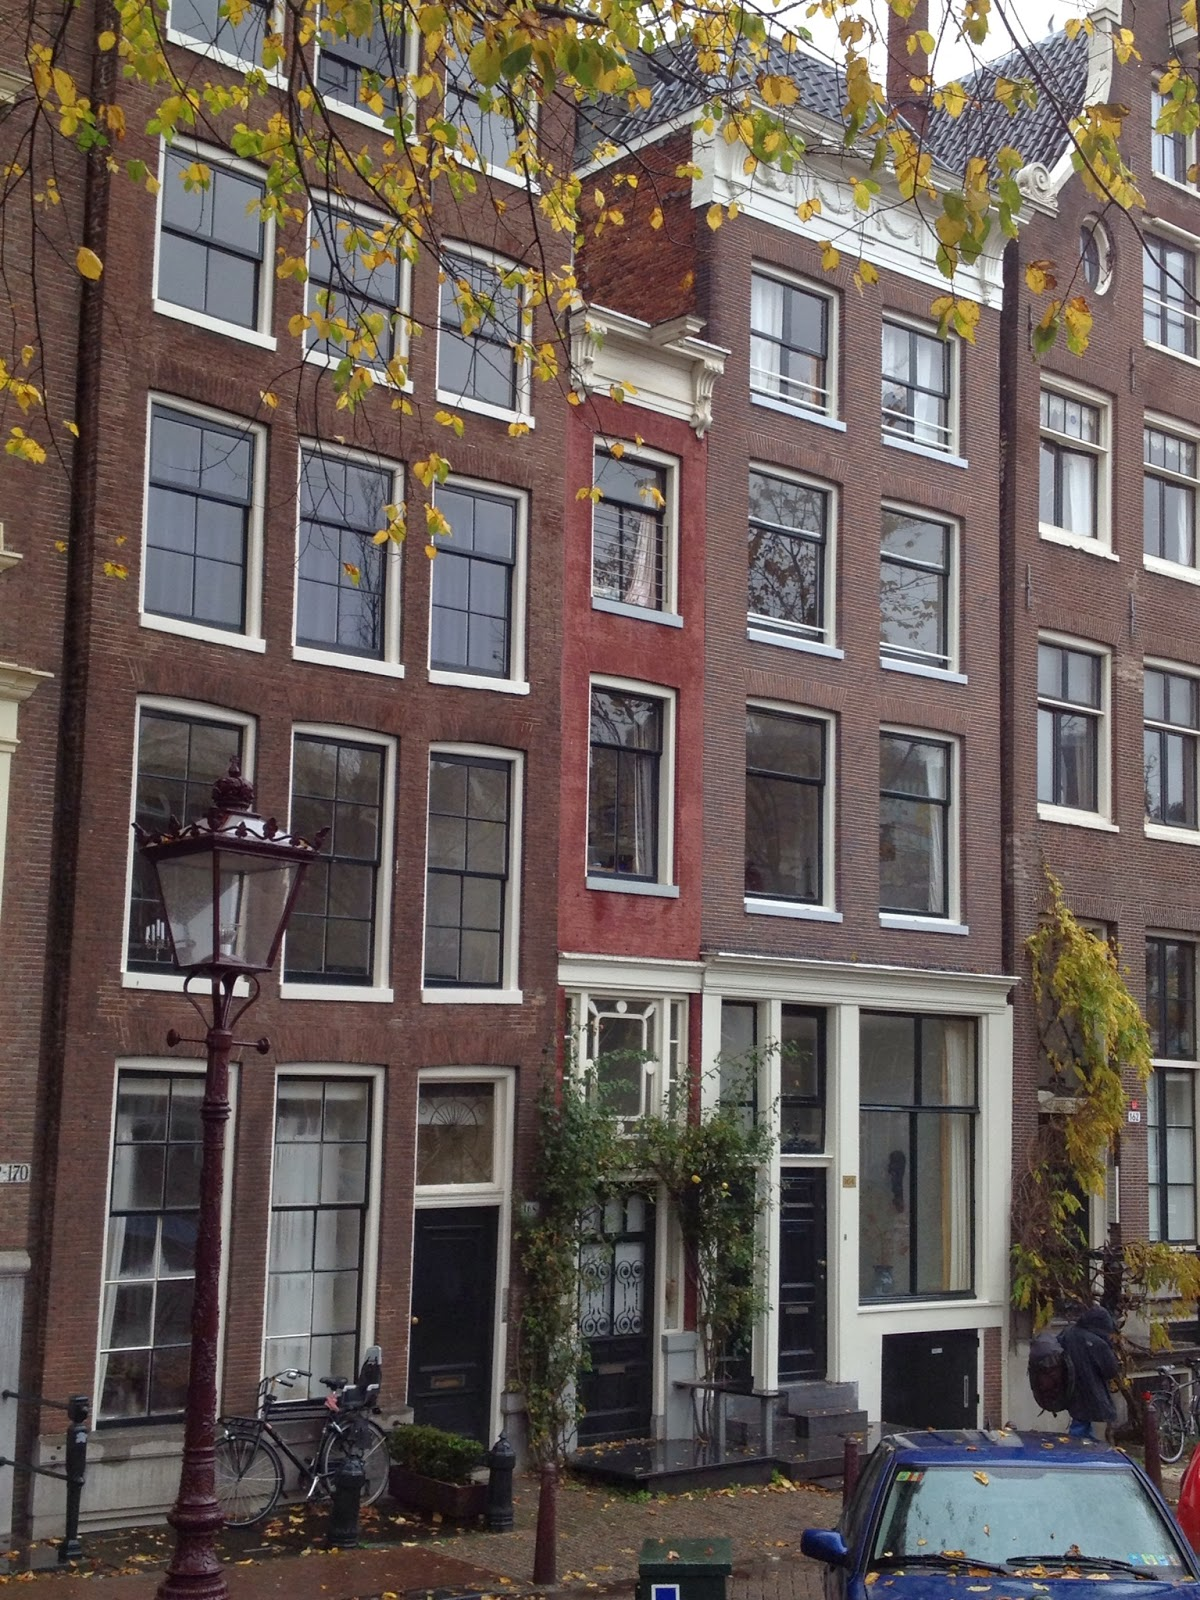 Amsterdam - The narrowest house in the world is also found in Amsterdam